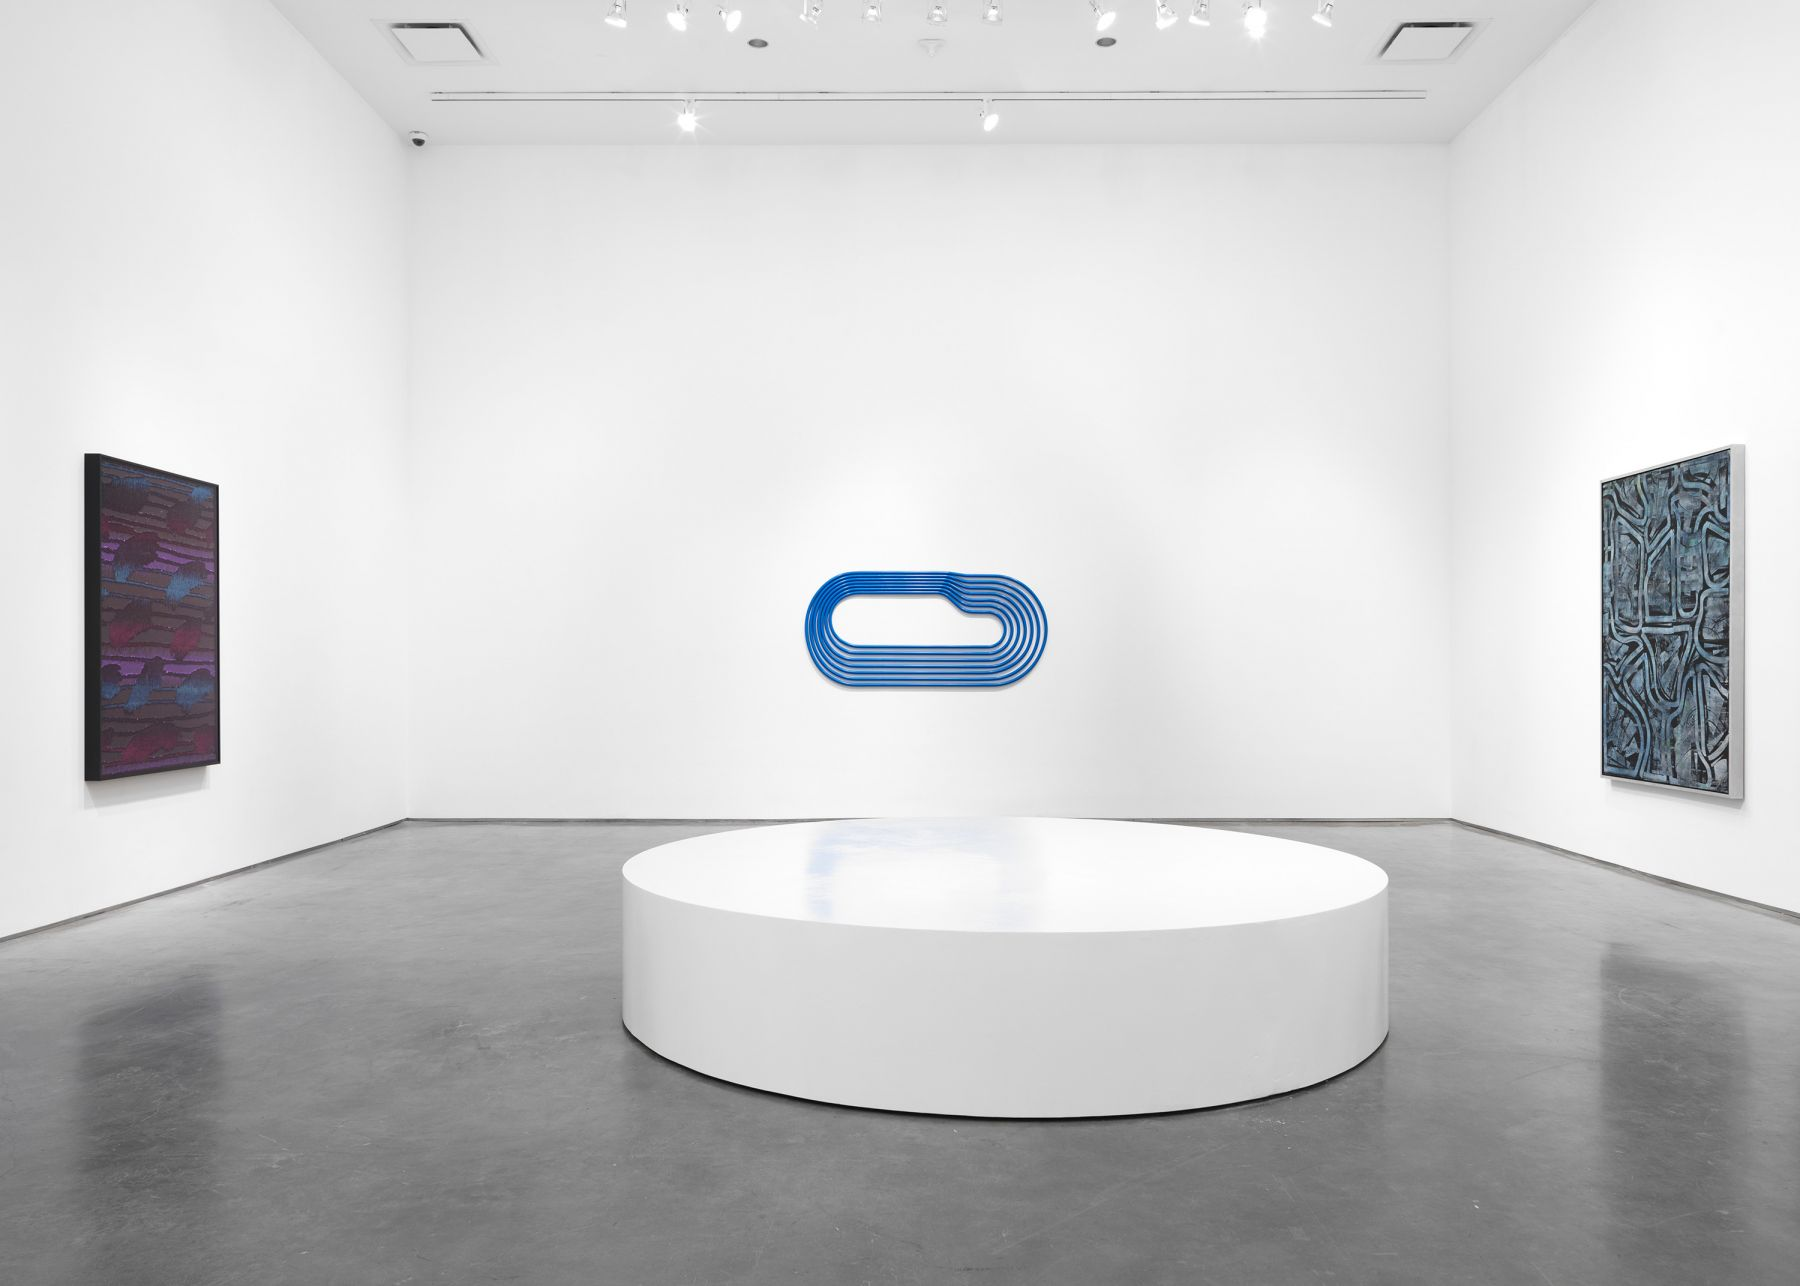 More Than Words (Installation View)